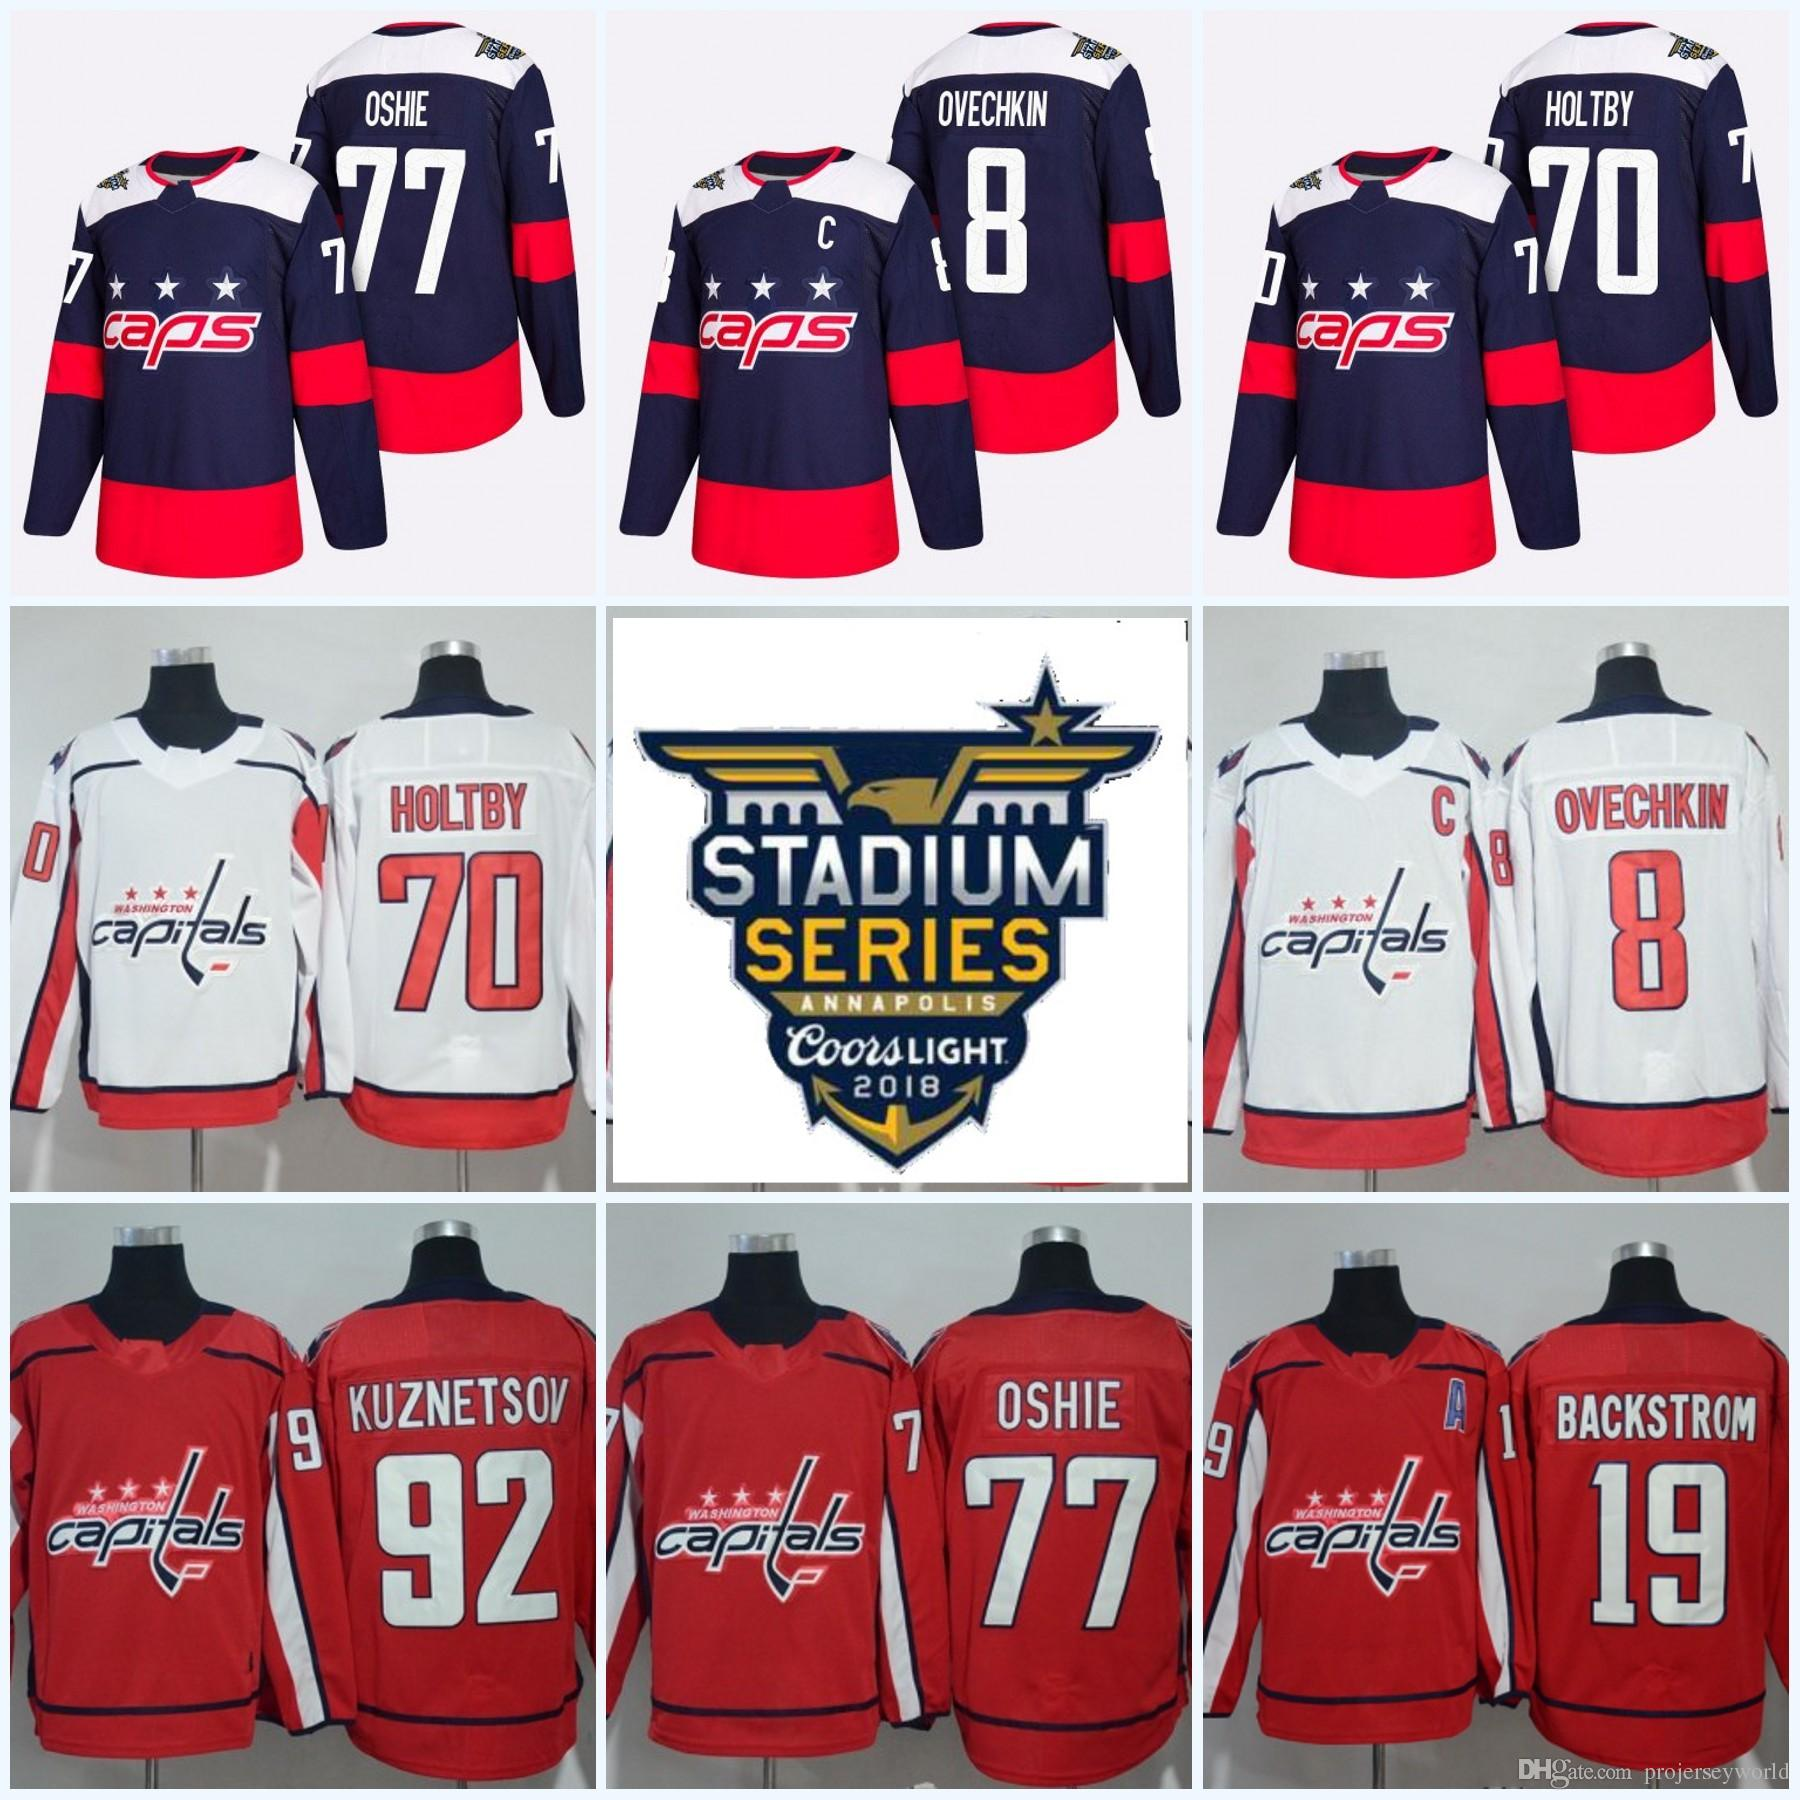 ca3fe349a22 2019 92 Evgeny Kuznetsov 2018 Stadium Series Washington Capitals 19 Nicklas  Backstrom 8 Alex Ovechkin 70 Braden Holtby T.J. Oshie Hockey Jersey From ...